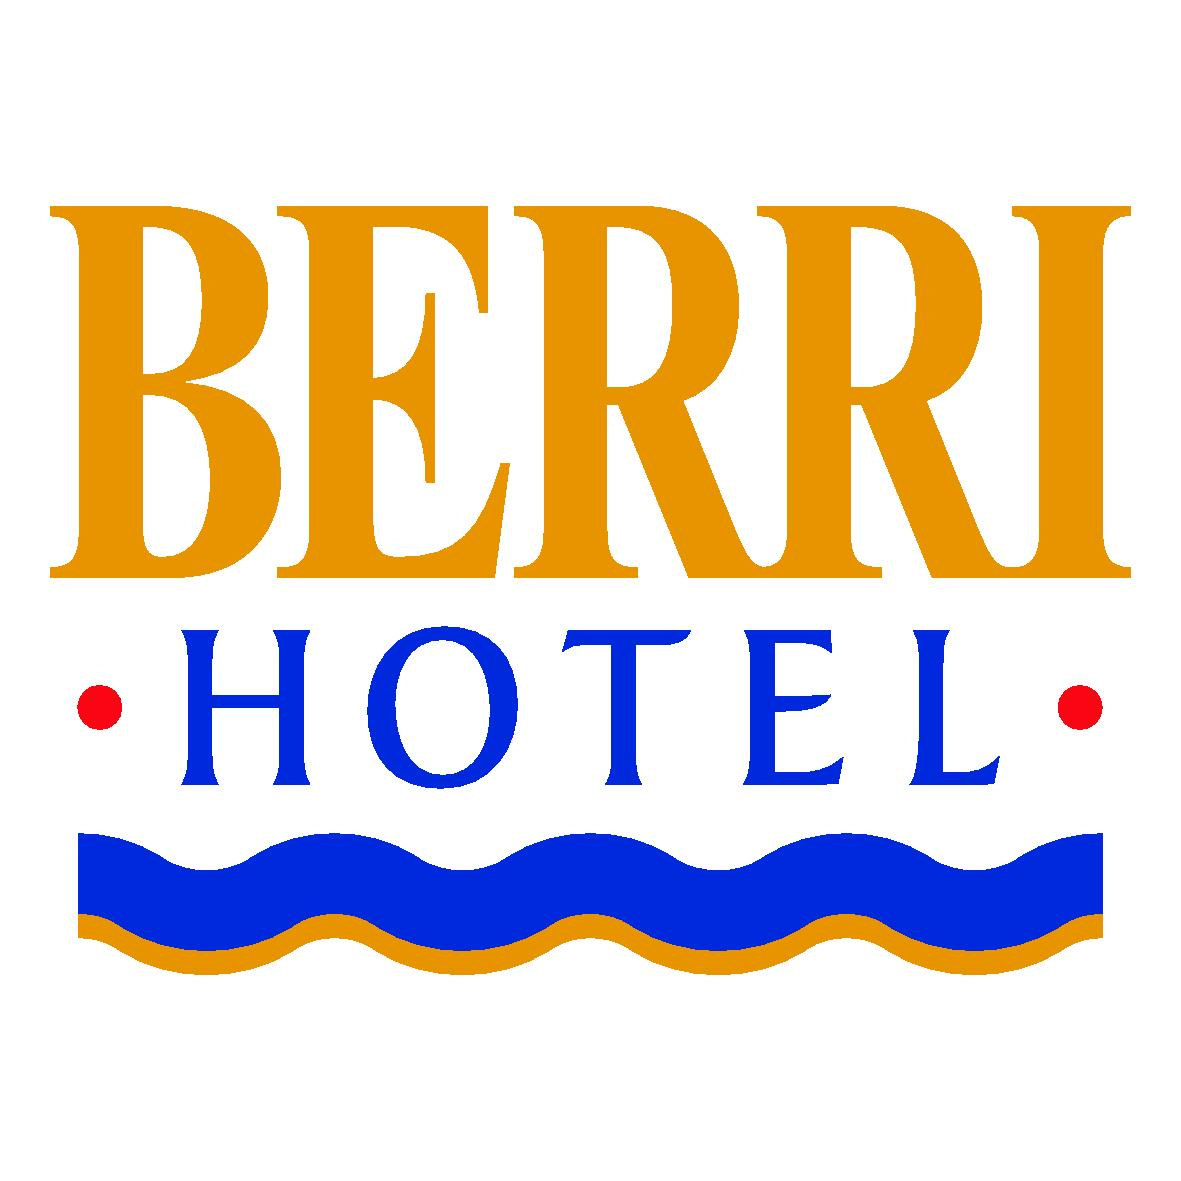 Berri Hotel - Accommodation in Surfers Paradise